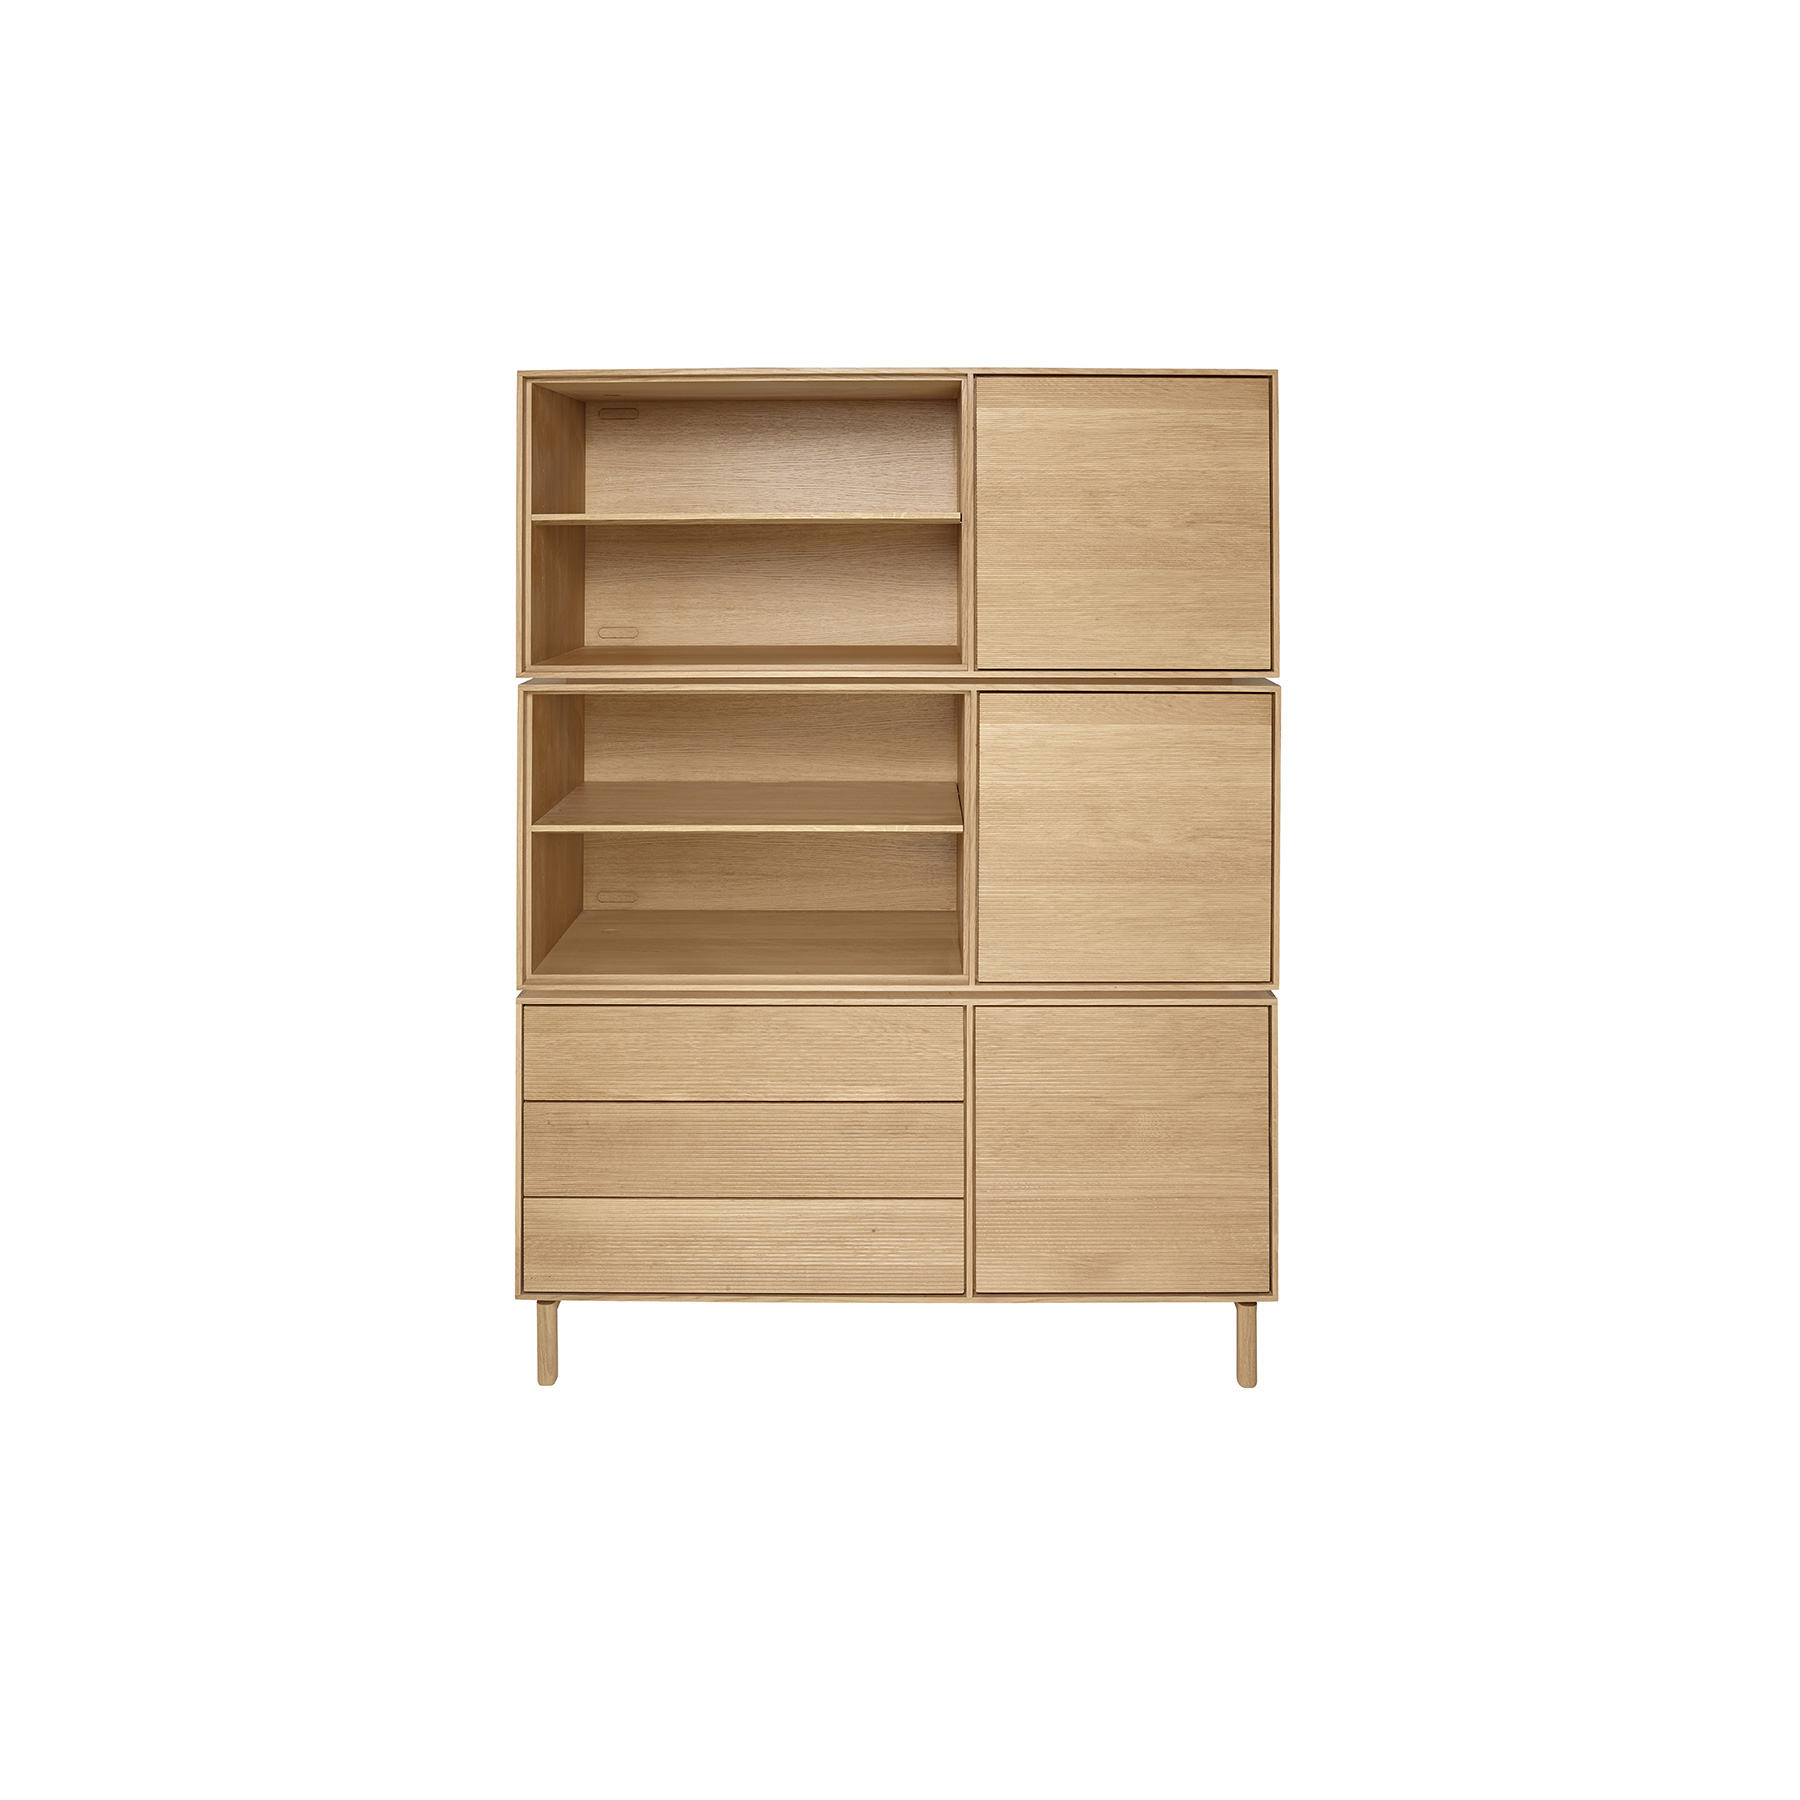 Modulo Drawer - <p>The brief for Modulo was to create a simple, flexible storage system. Modulo is built around a single basic solid oak cabinet carcass which can be specified with either doors and drawers, doors and shelves, drawers and shelves or just shelves. Modulo combines traditional cabinet construction with the modern desire for choice and personalisation.  Each option is available oriented left-handed or right-handed and can be used individually or stacked and combined to offer numerous storage solutions. Wood finishes and colour samples are shown for guidance only as screen colours may vary. We would recommend ordering a sample in your chosen finish. However, wood is a natural material and varies in colour, grain and structure.<br />